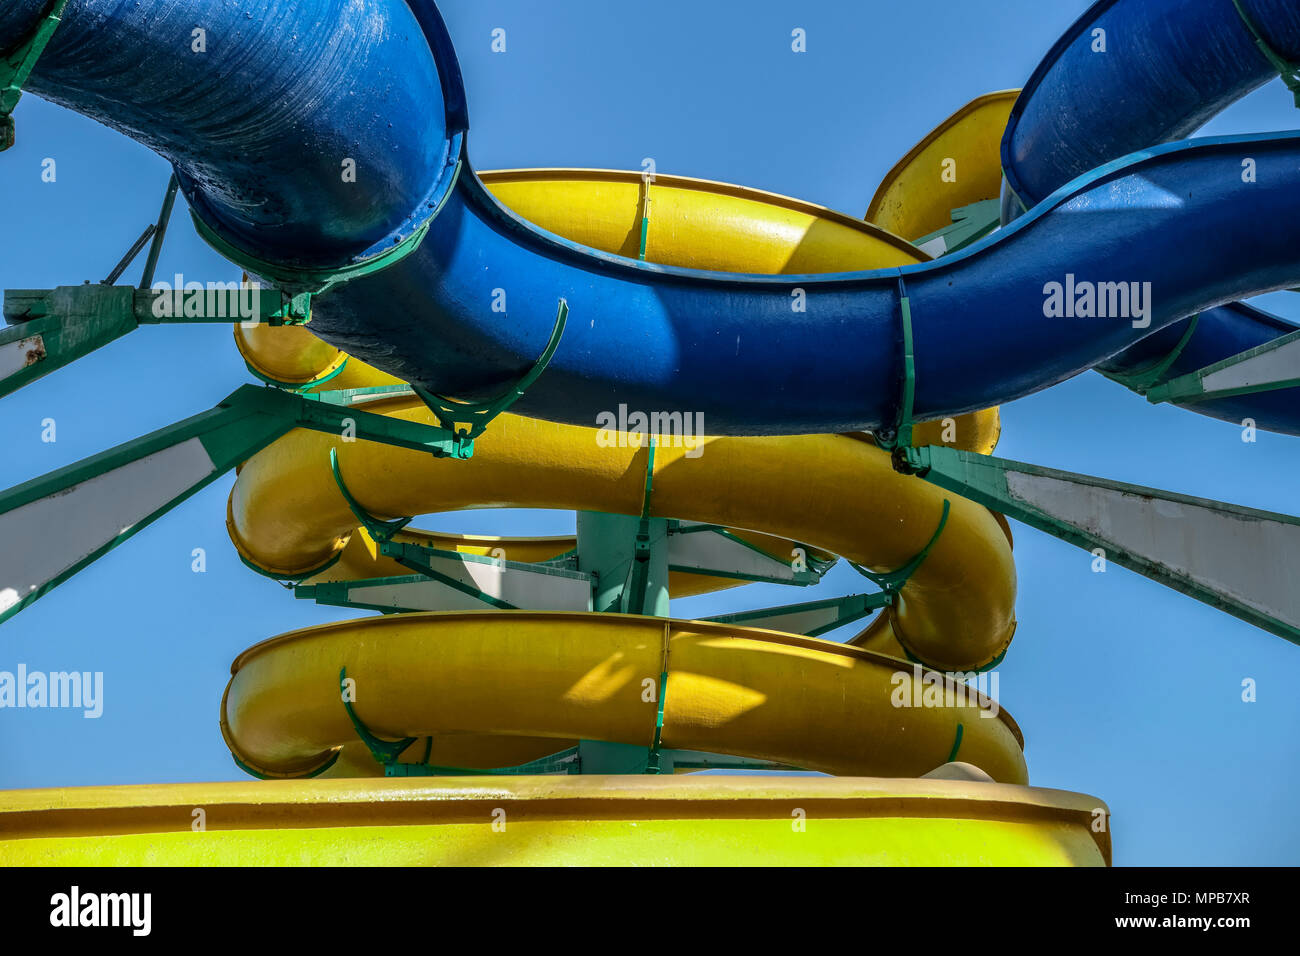 Summer fun, aquapark. Modern water slide park, yellow and blue slides. Sunny day, clear blue sky cloudless, close up, seen from below, pov. - Stock Image